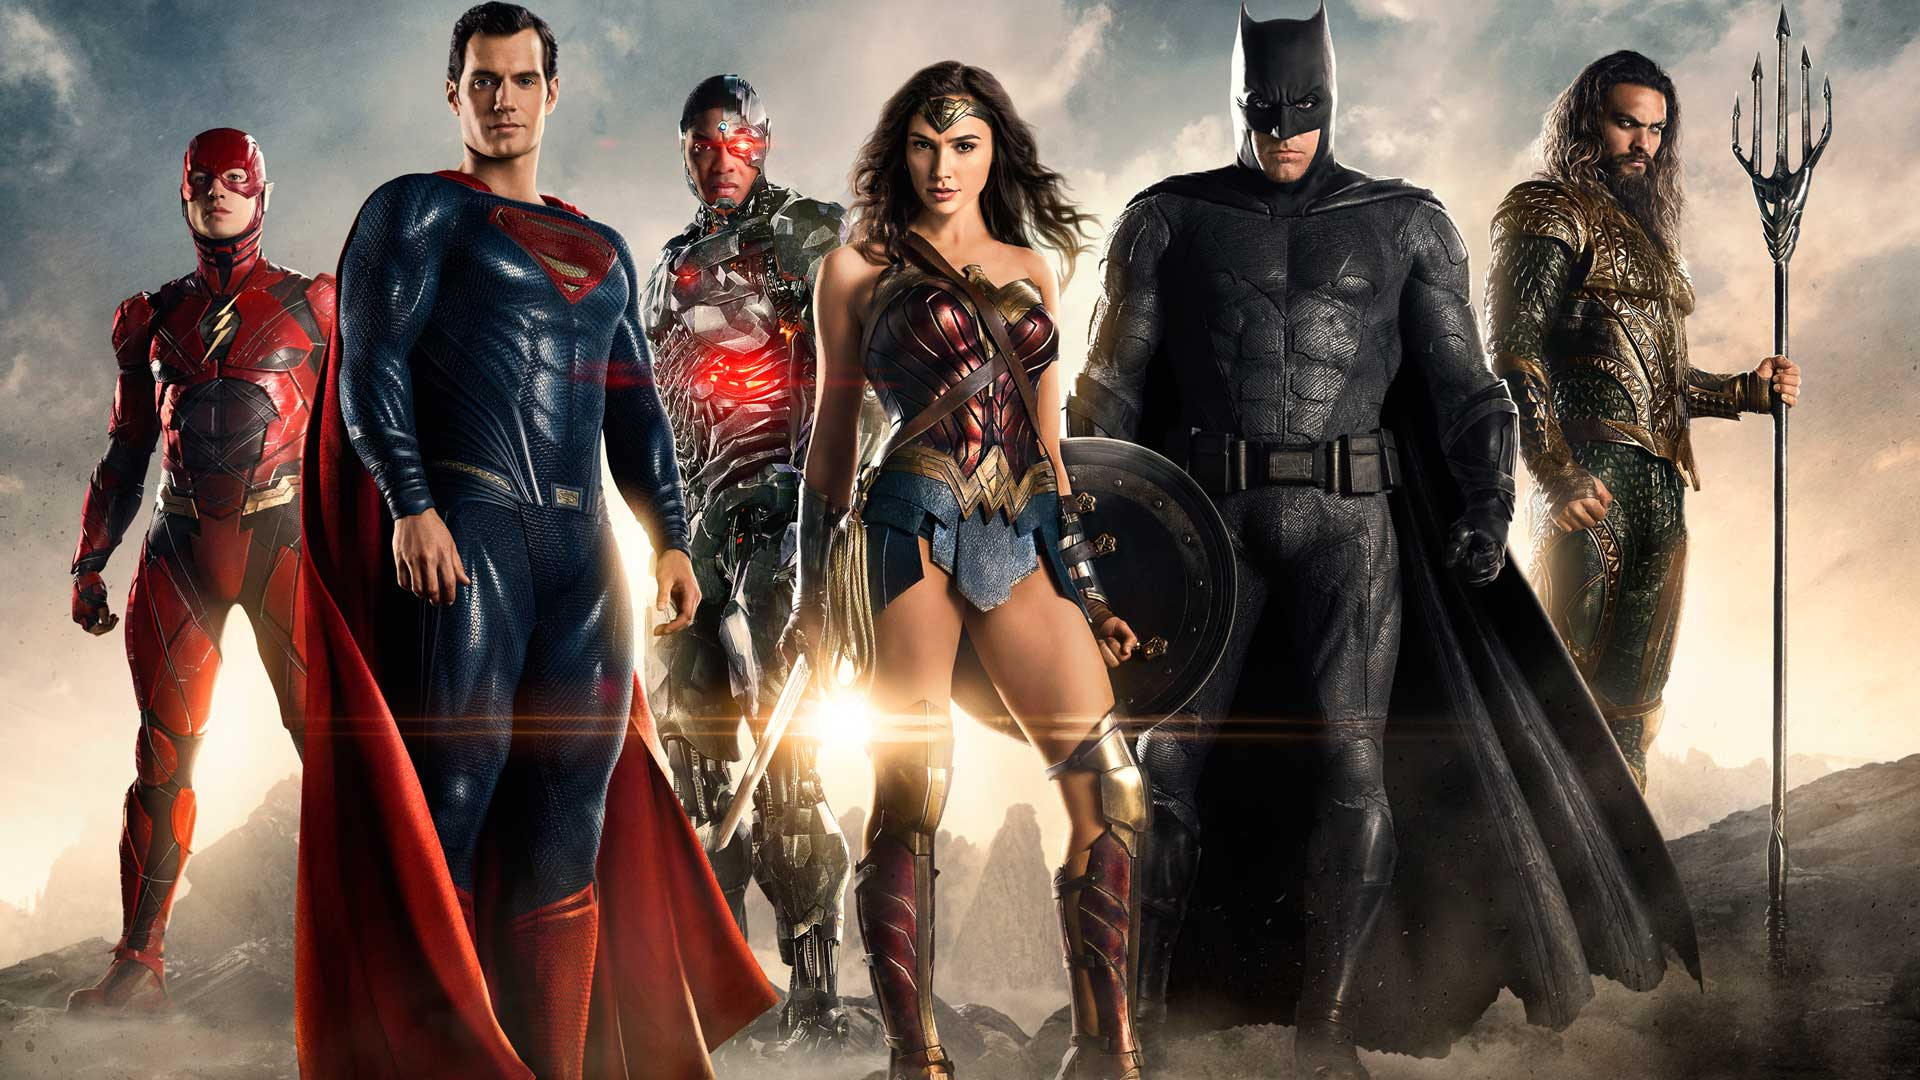 gallerymovies_1920x1080_justiceleague01_57be61d14b0303_09859959.jpg